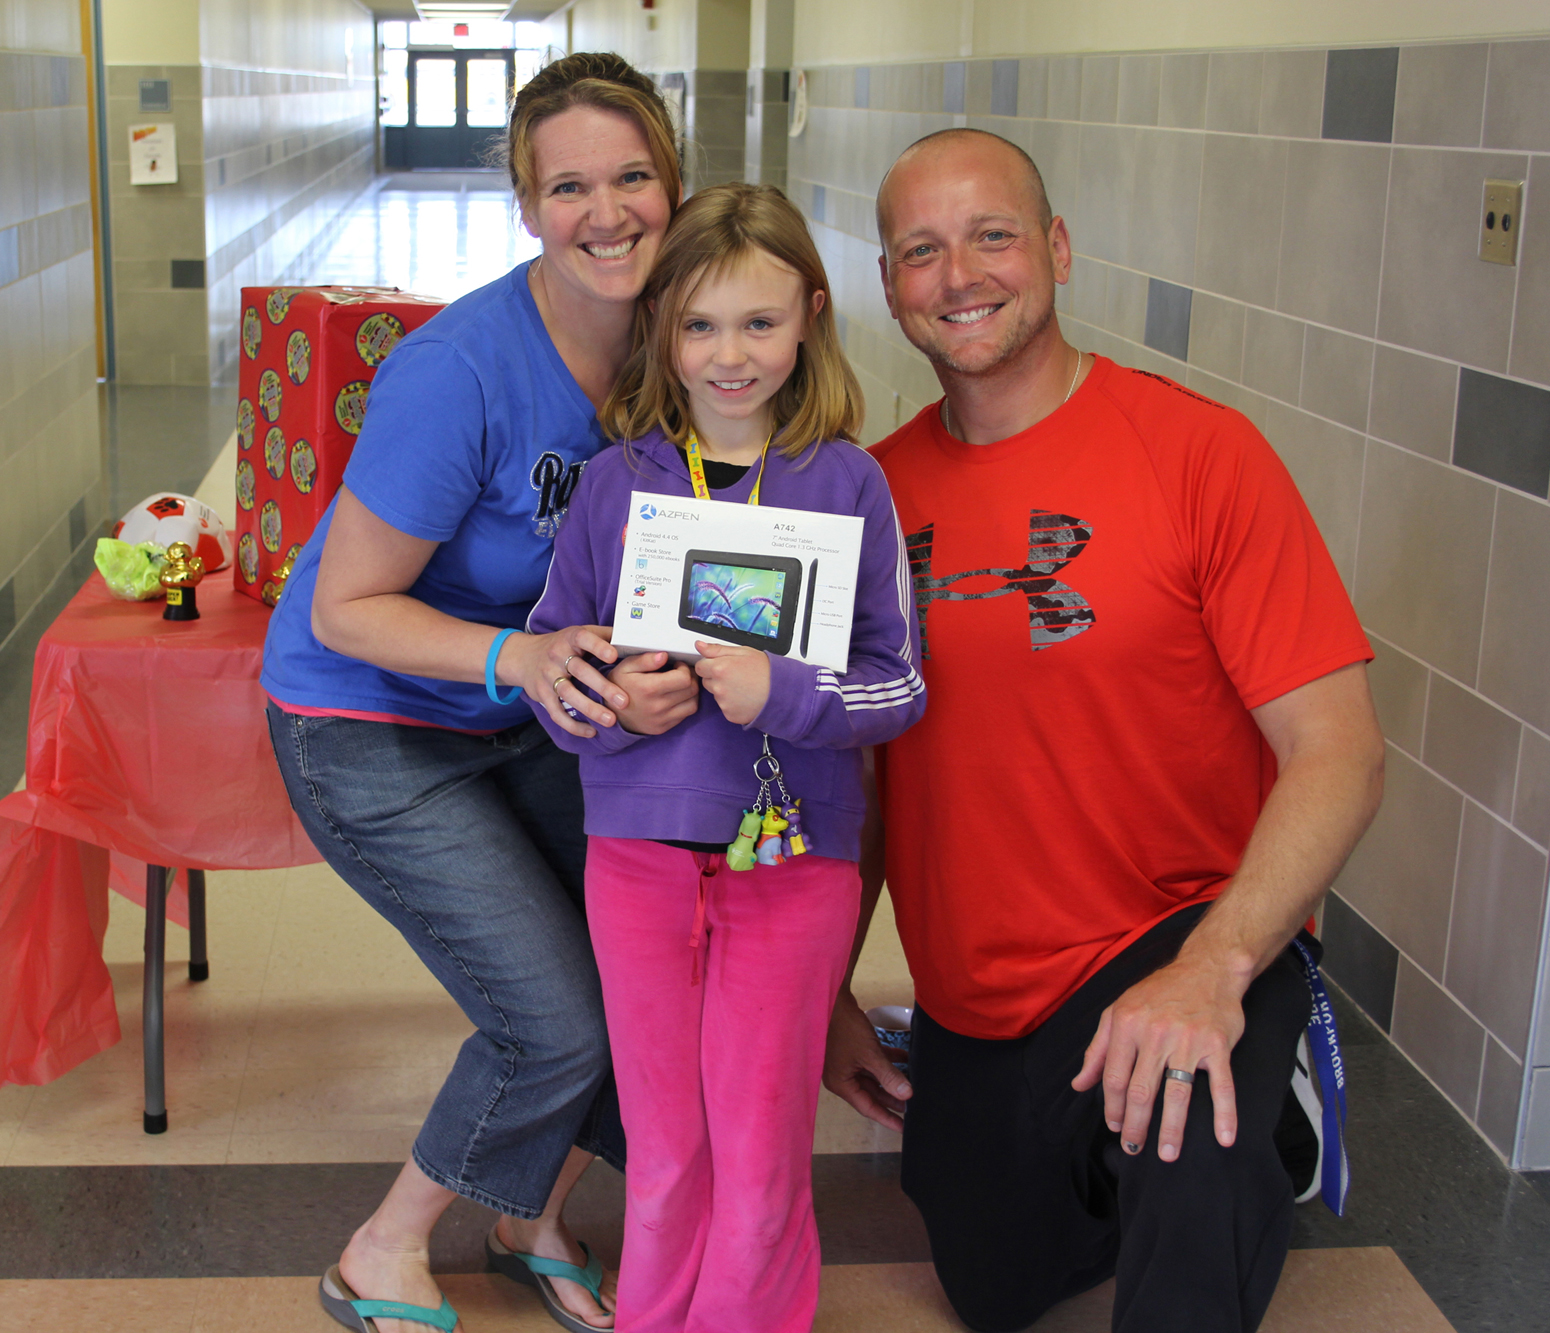 Third-grade student Ada Miller accepts a tablet presented by physical education 